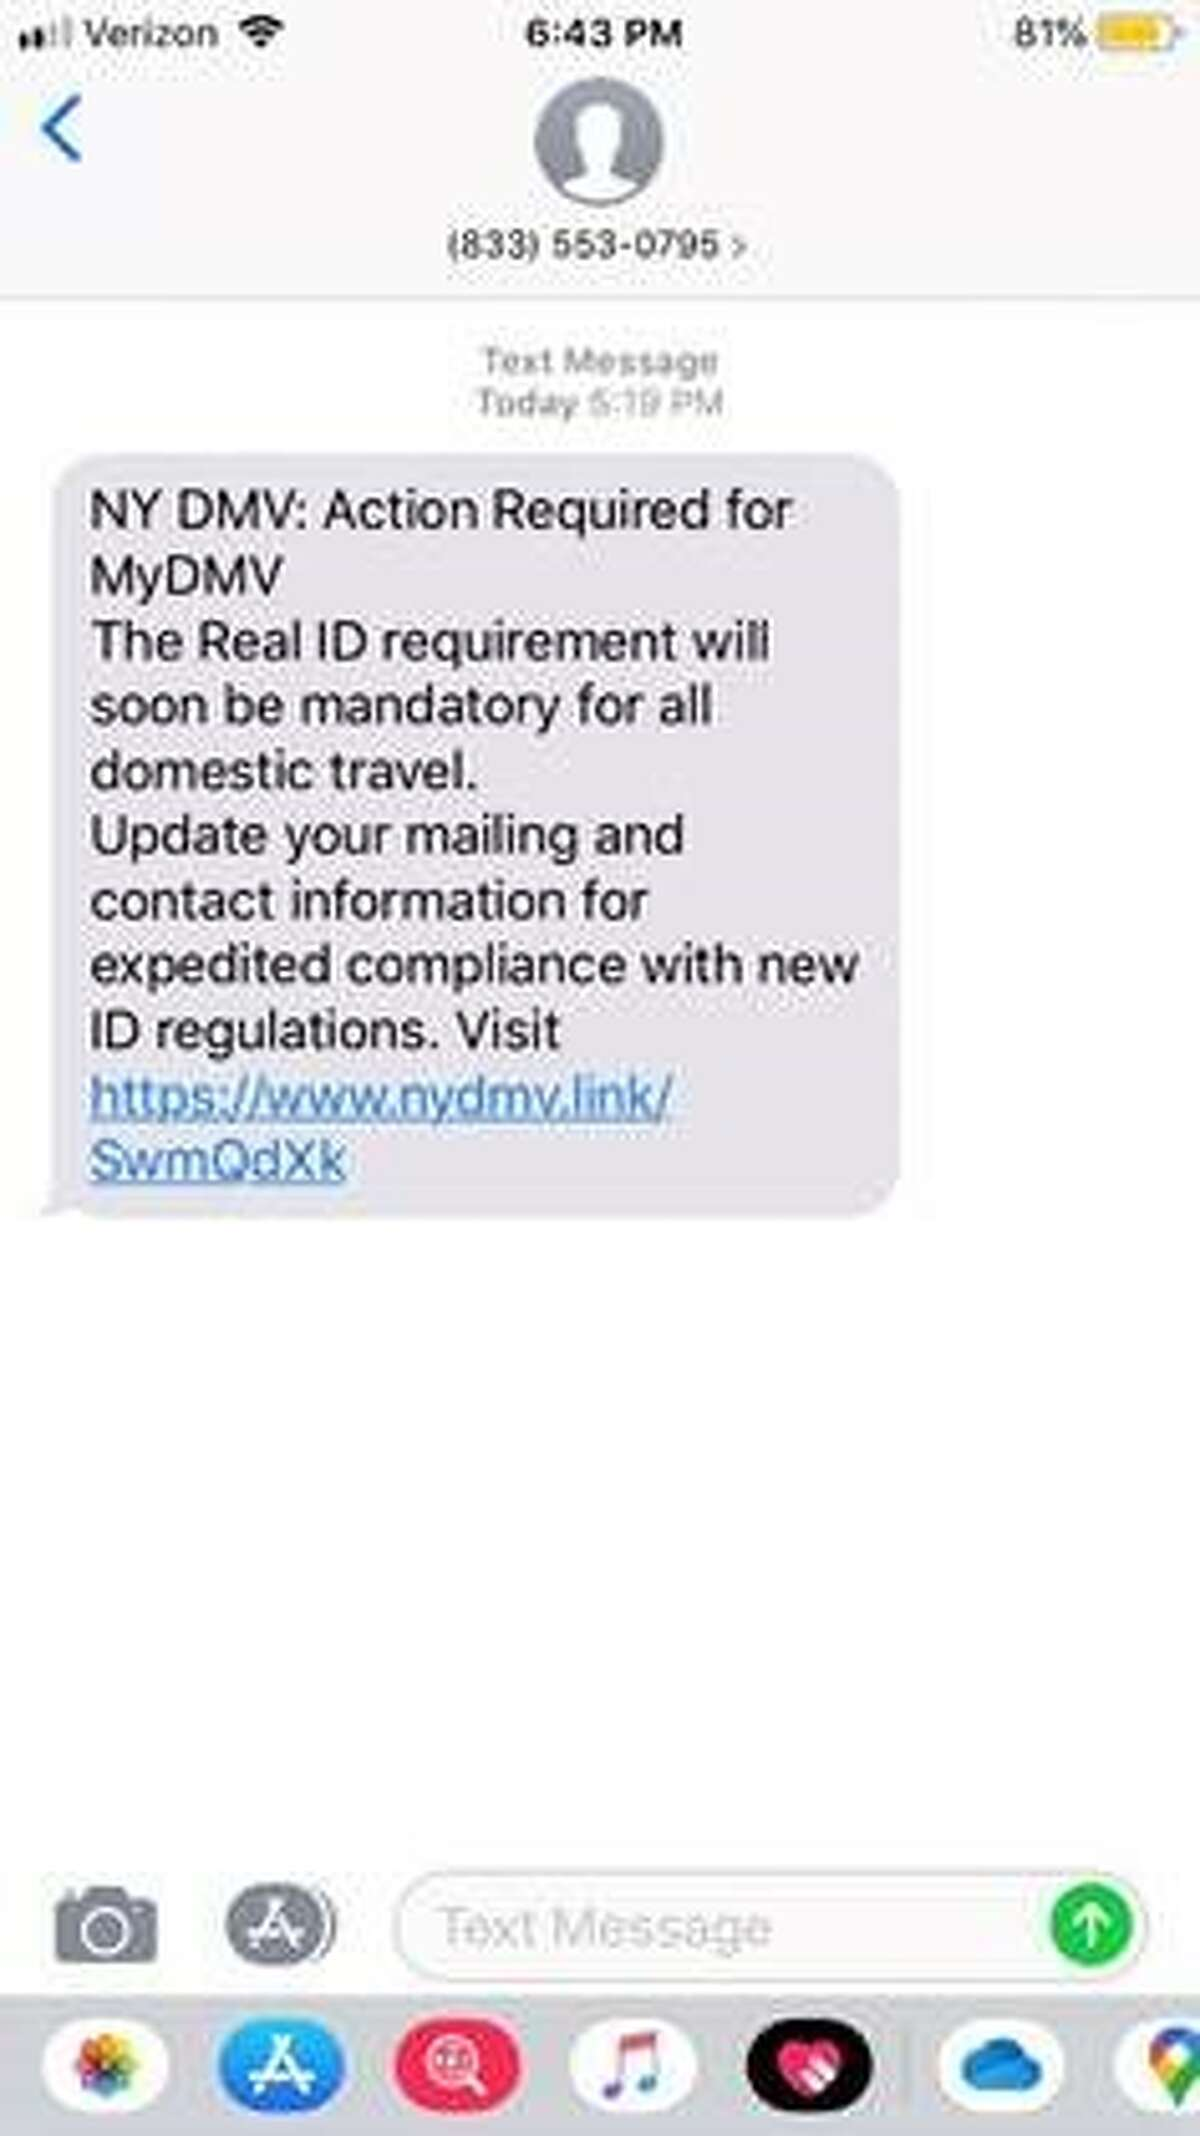 The New York State Department of Motor Vehicles today warned New Yorkers of a text message phishing scheme. Phishing texts are fraudulent messages designed to obtain data or sensitive personal information to be used to commit identity theft or trick the recipient into installing malicious software onto a computer or mobile device. The illegitimate text messages asked recipients to update their mailing address and contact information for expedited compliance with Real ID regulations. Anyone who received such a text message should delete it right away. These images are samples of the text message sent and the associated webpage